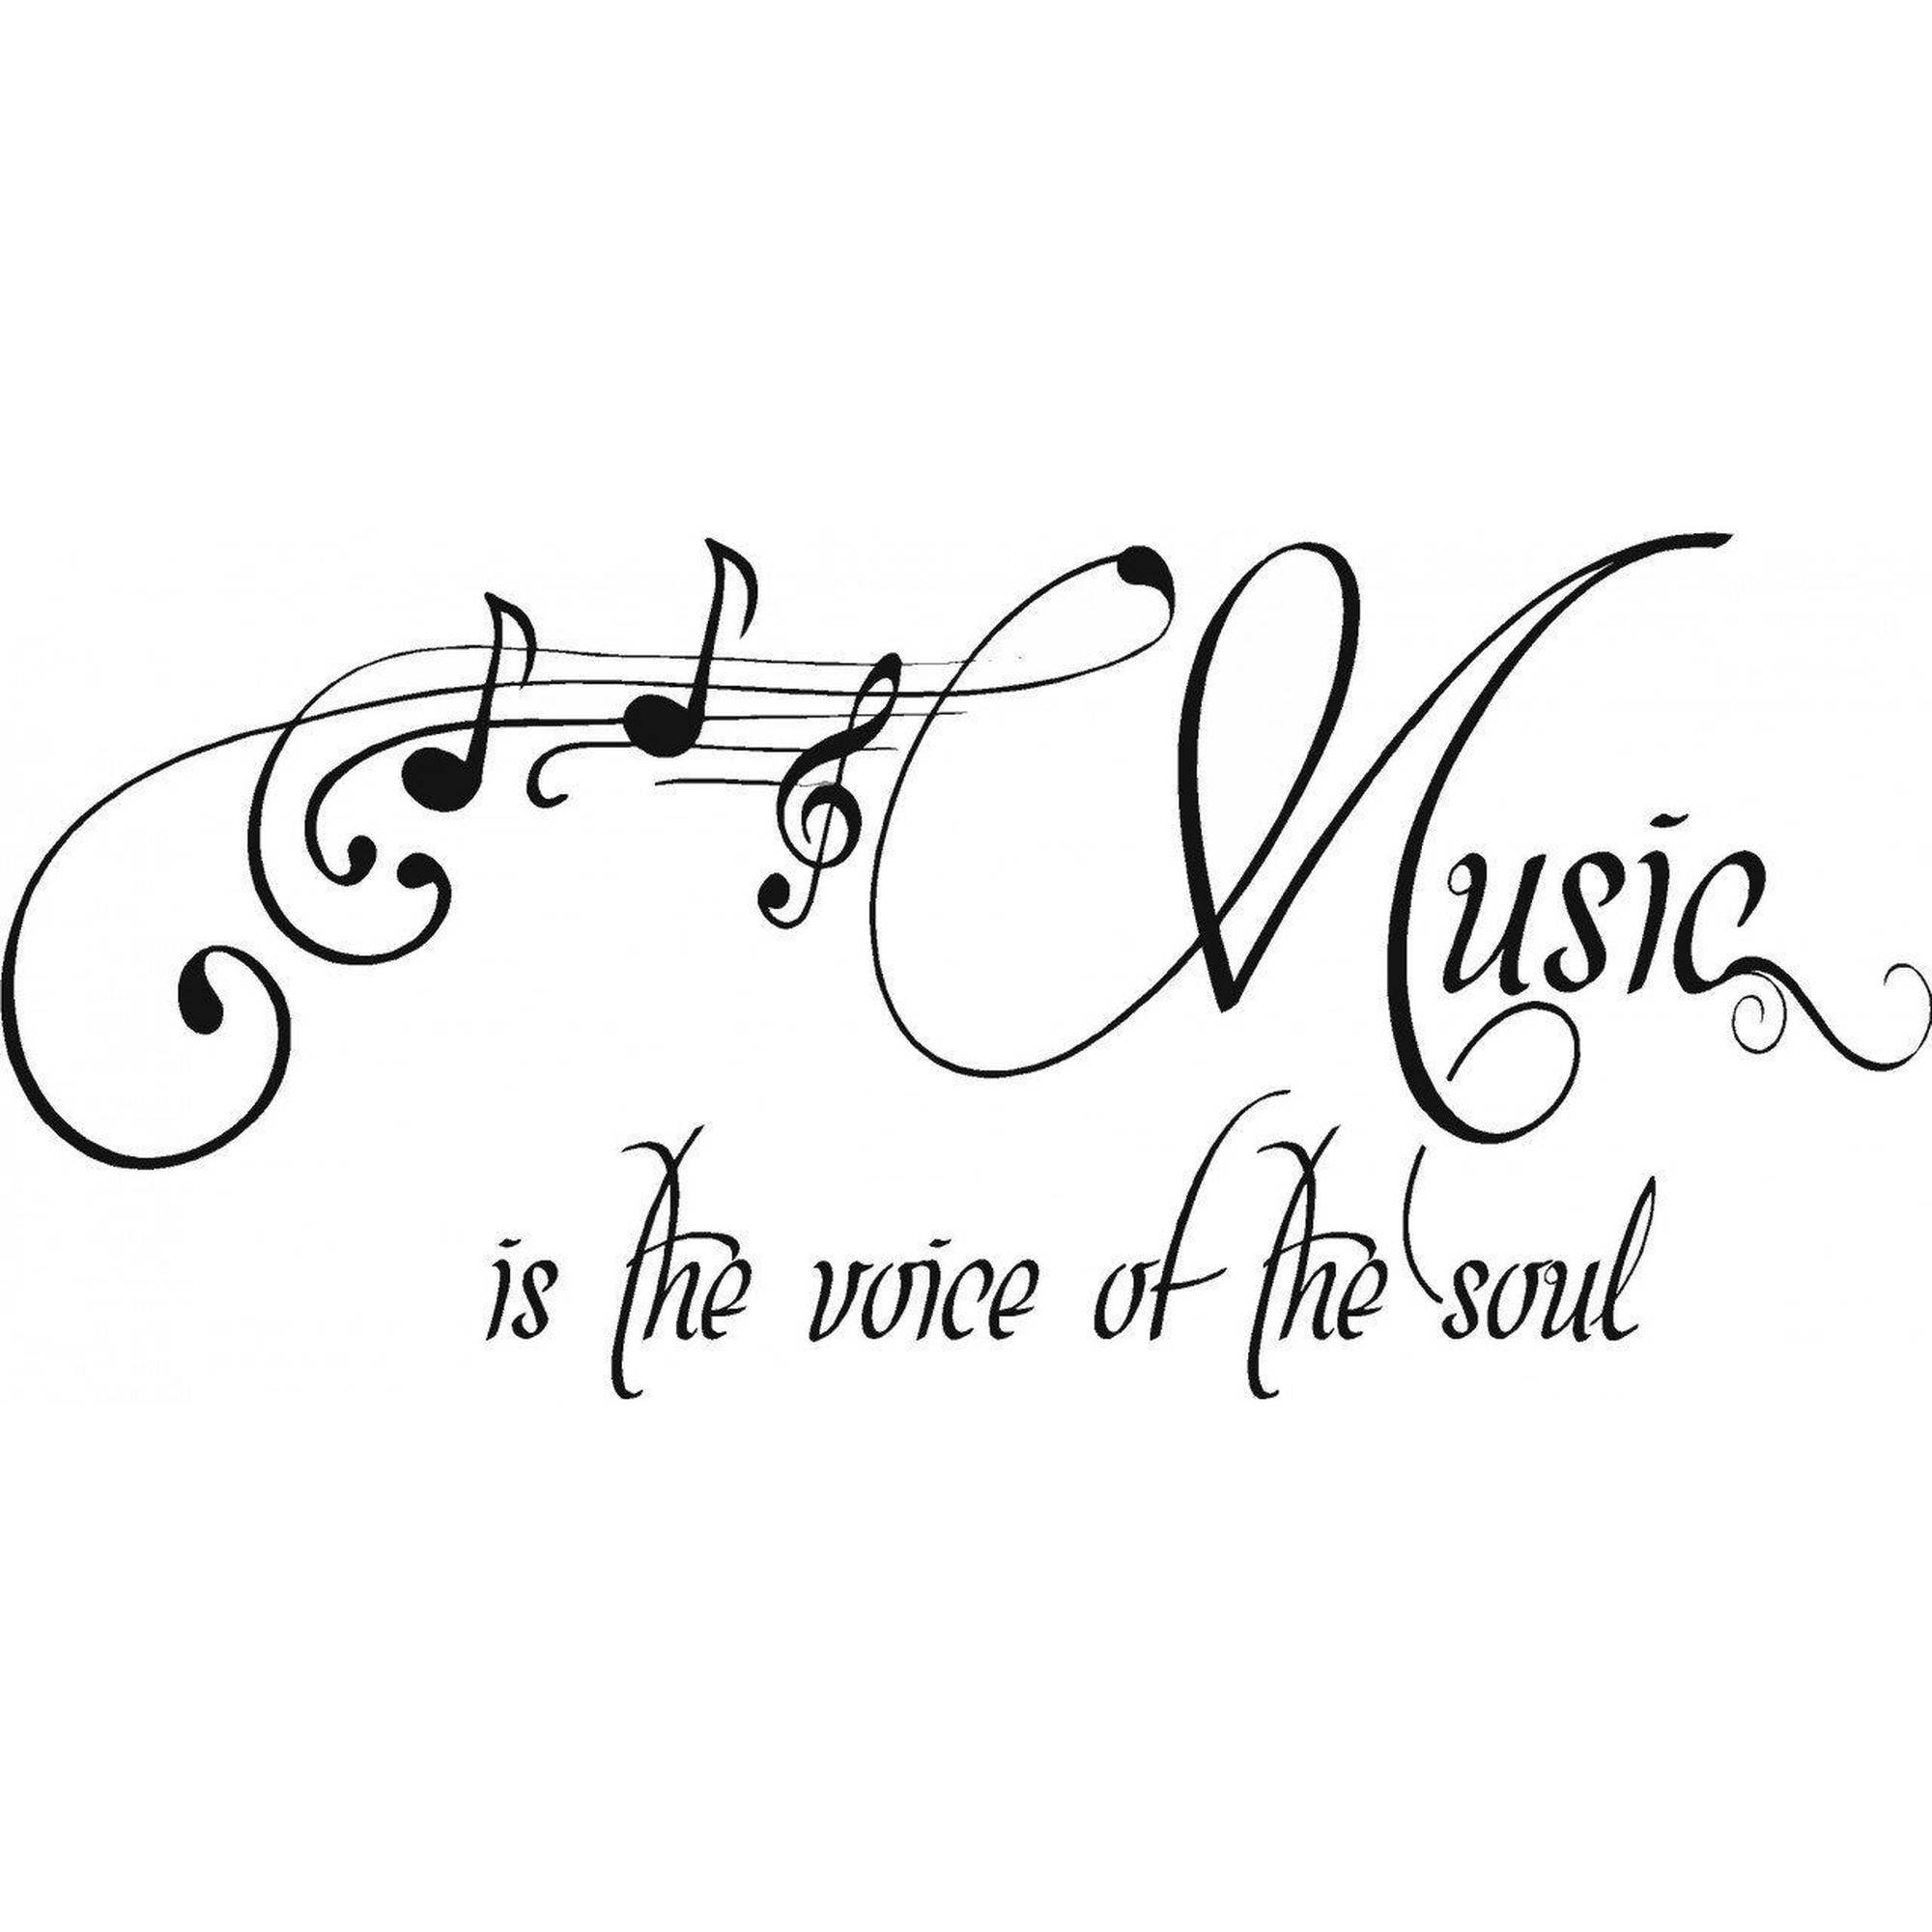 "Music Is The Voice Of The Soul Quote Bedroom Vinyl Wall Decal, 9"" x 20"", Black"